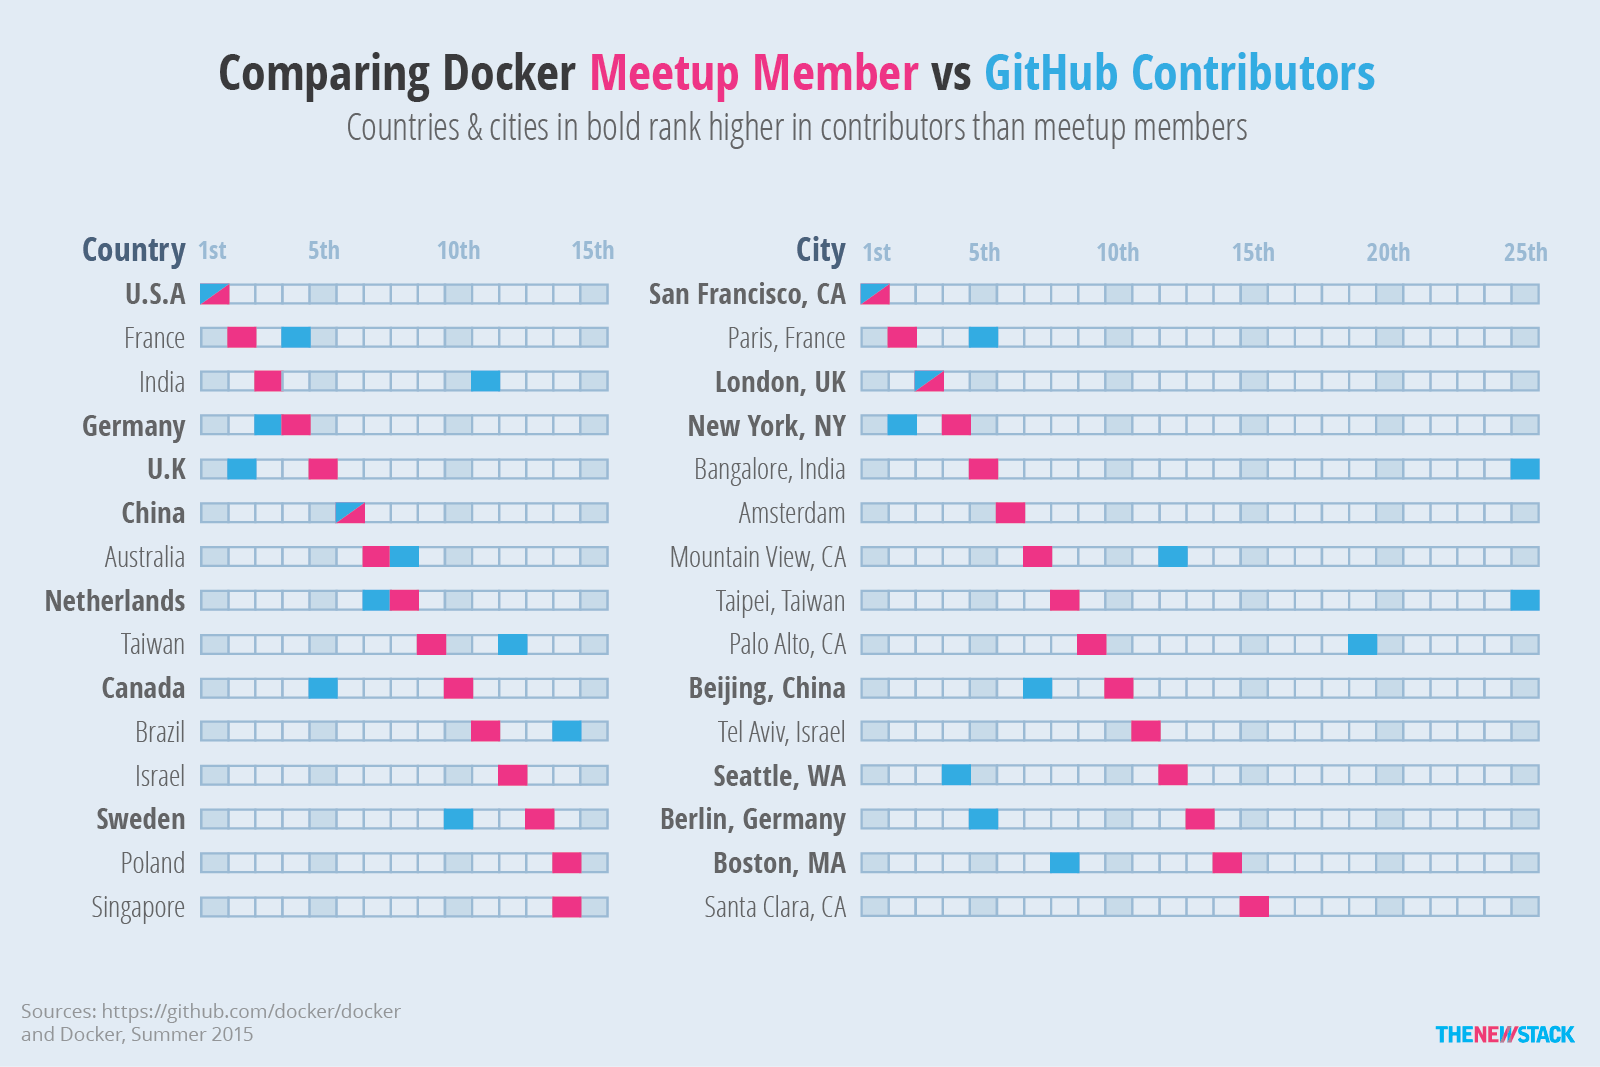 Meetup figures for cities are less likely to match country-level figures.